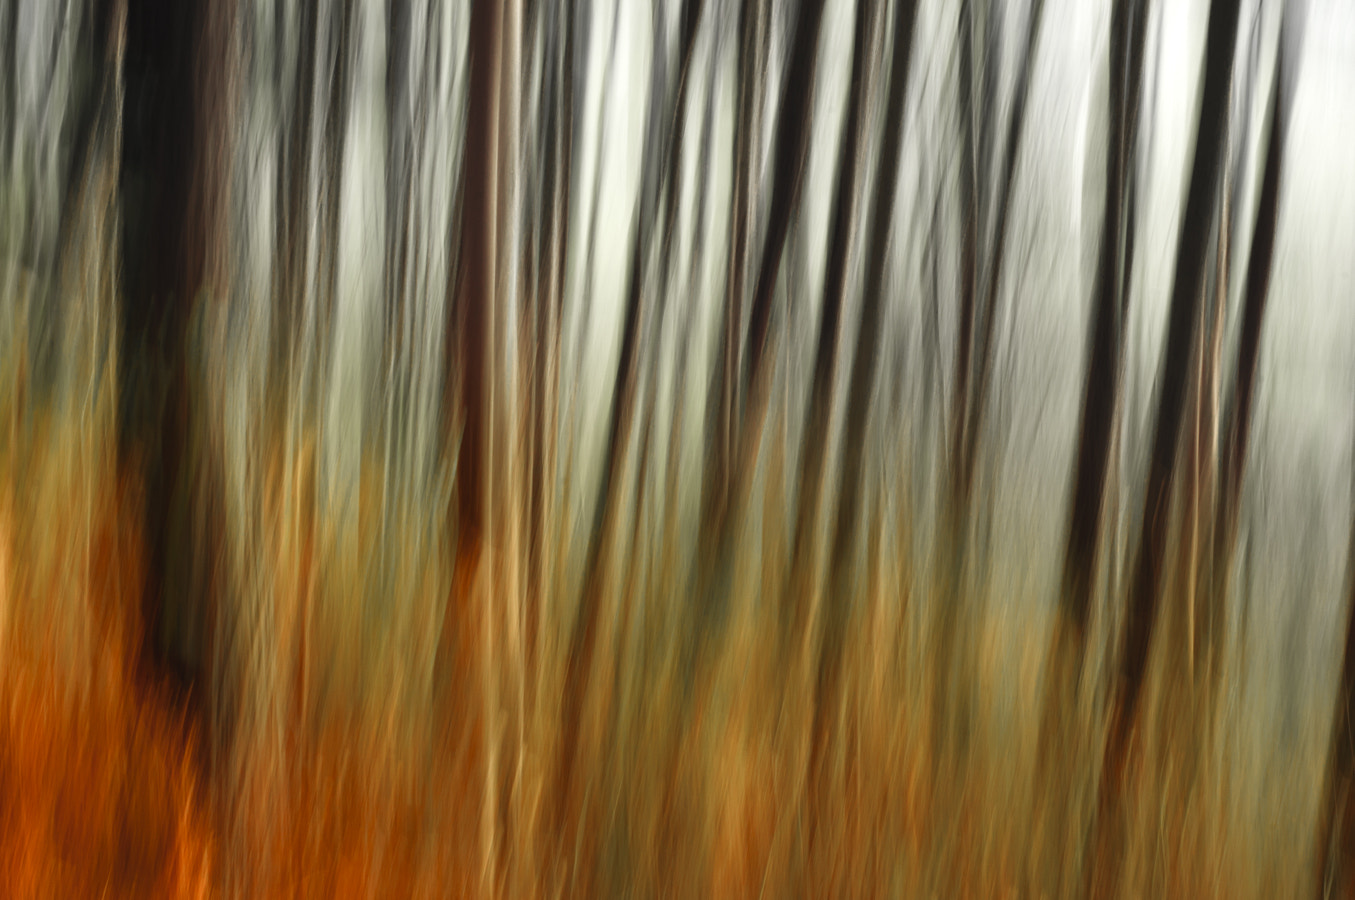 Photograph The abstract Forest: Fire by Saghani  on 500px